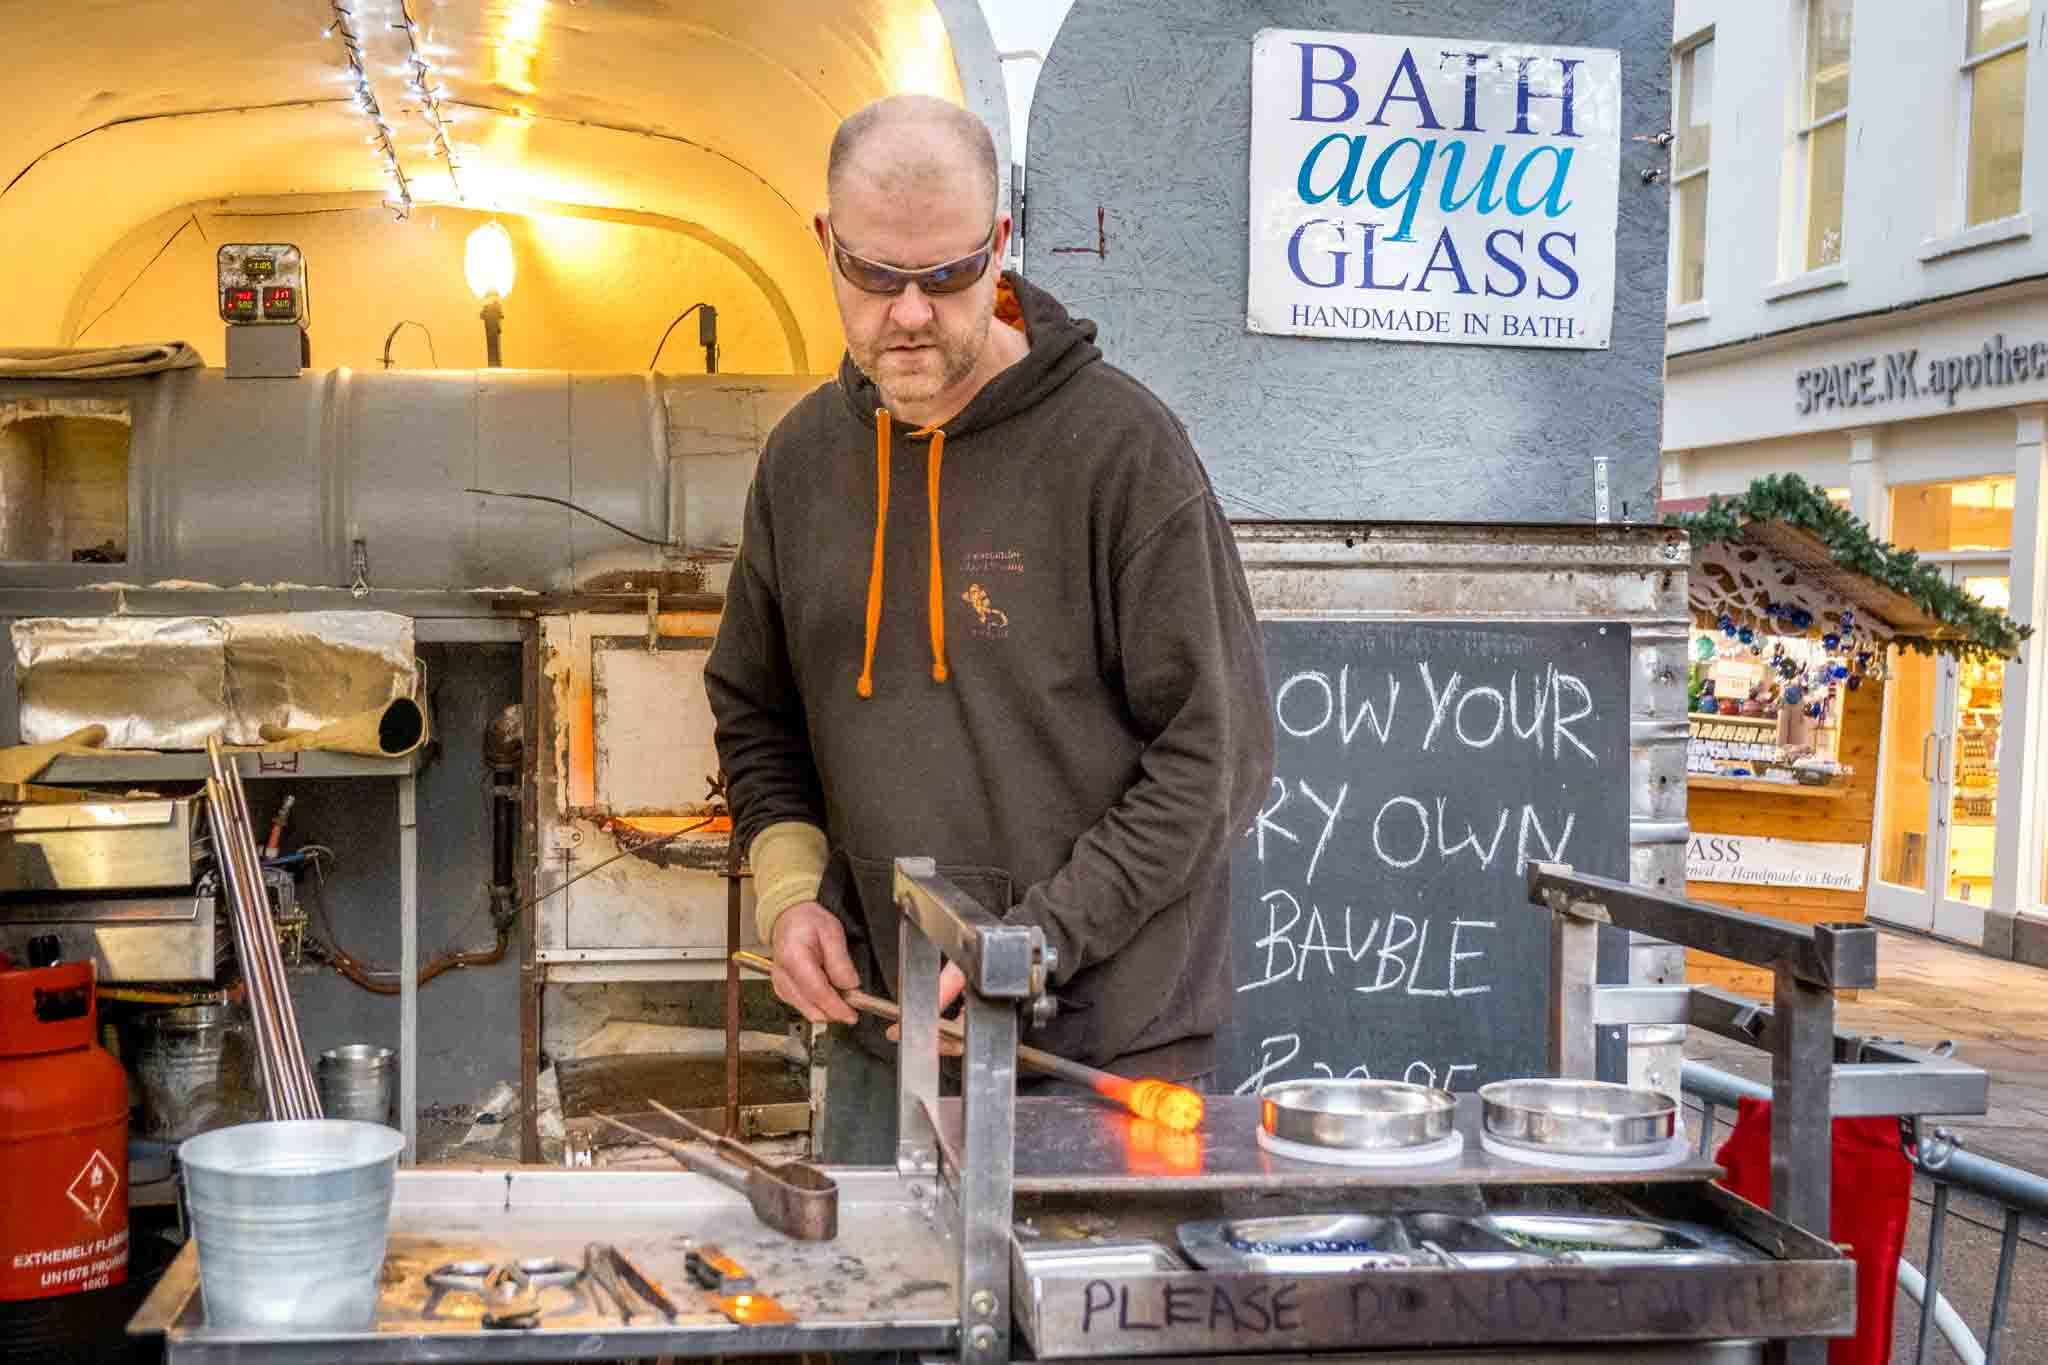 Man working on a blown glass creation at a mobile studio in the streets of Bath UK